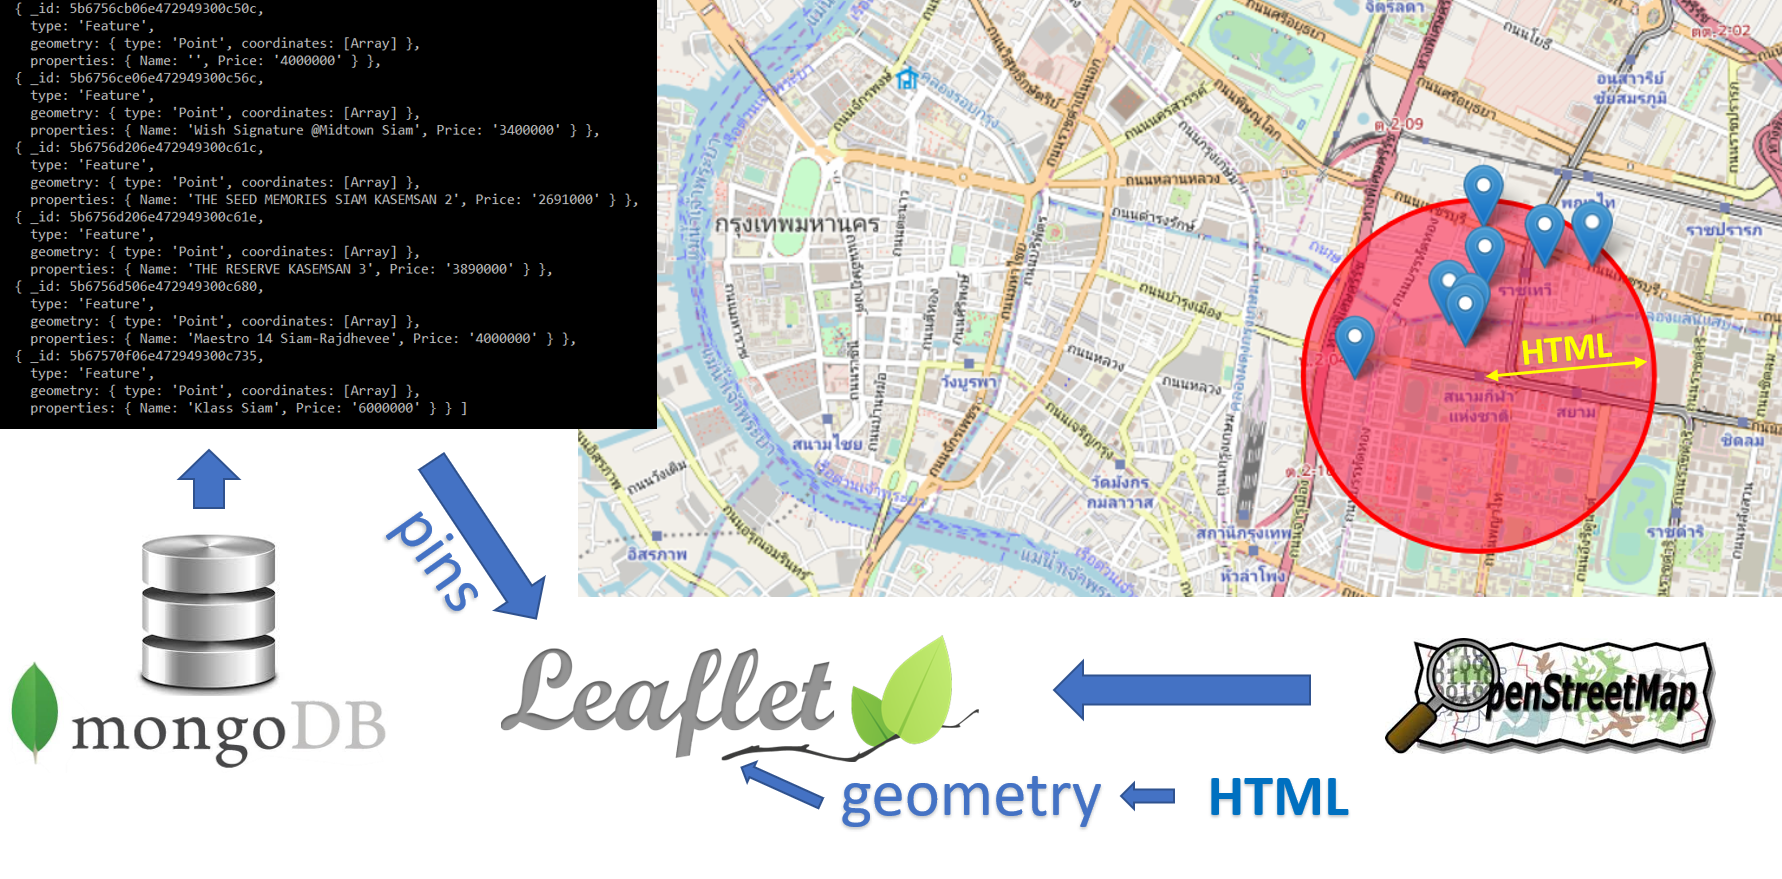 Listing search tool on leaflet NodeJS web application to